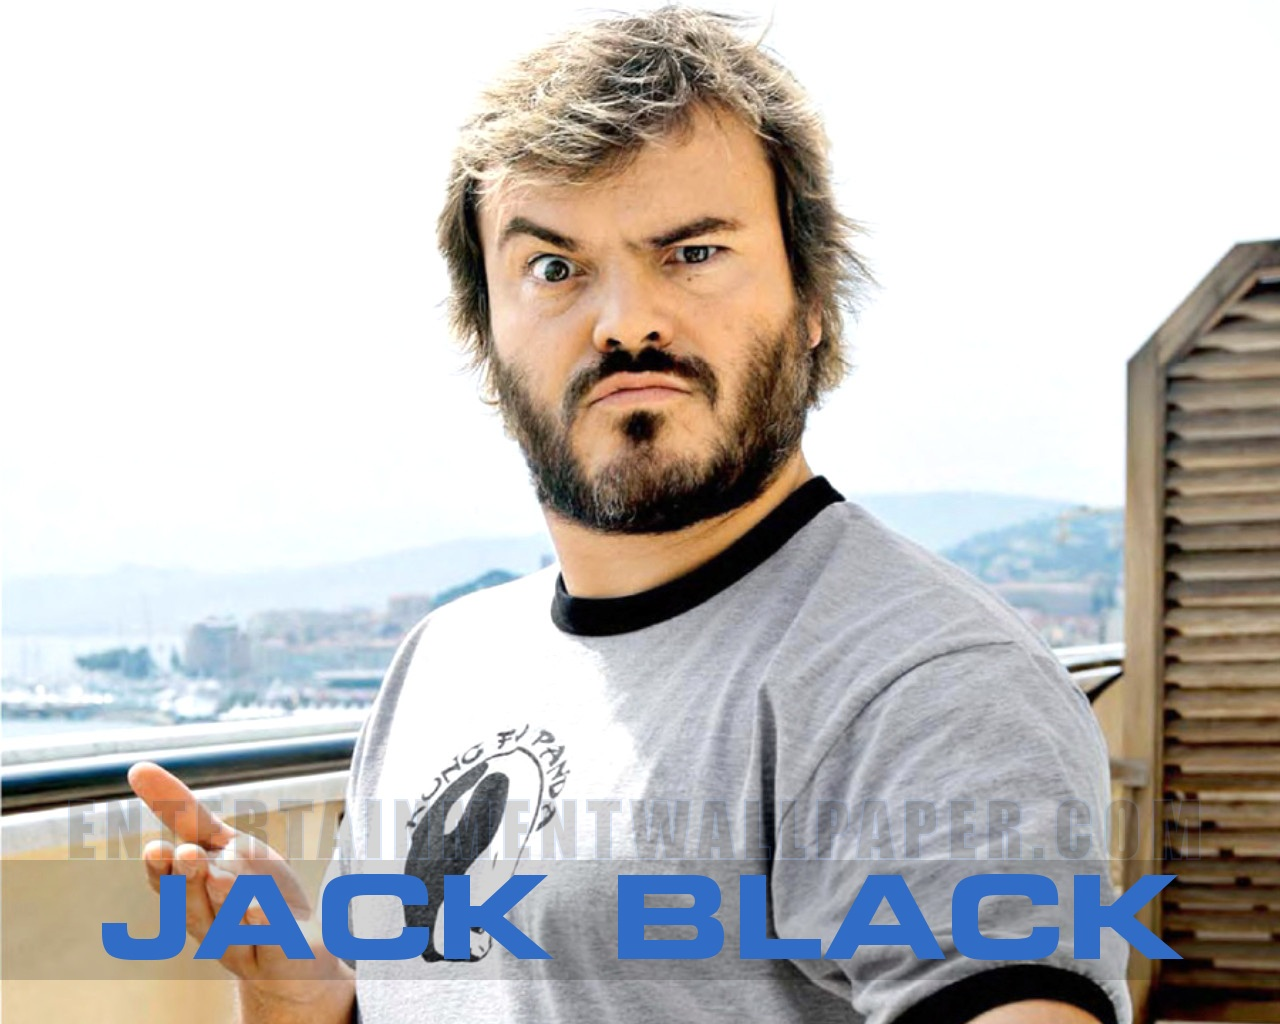 School of rock jack black quotes quotesgram - Jack Black Quotes